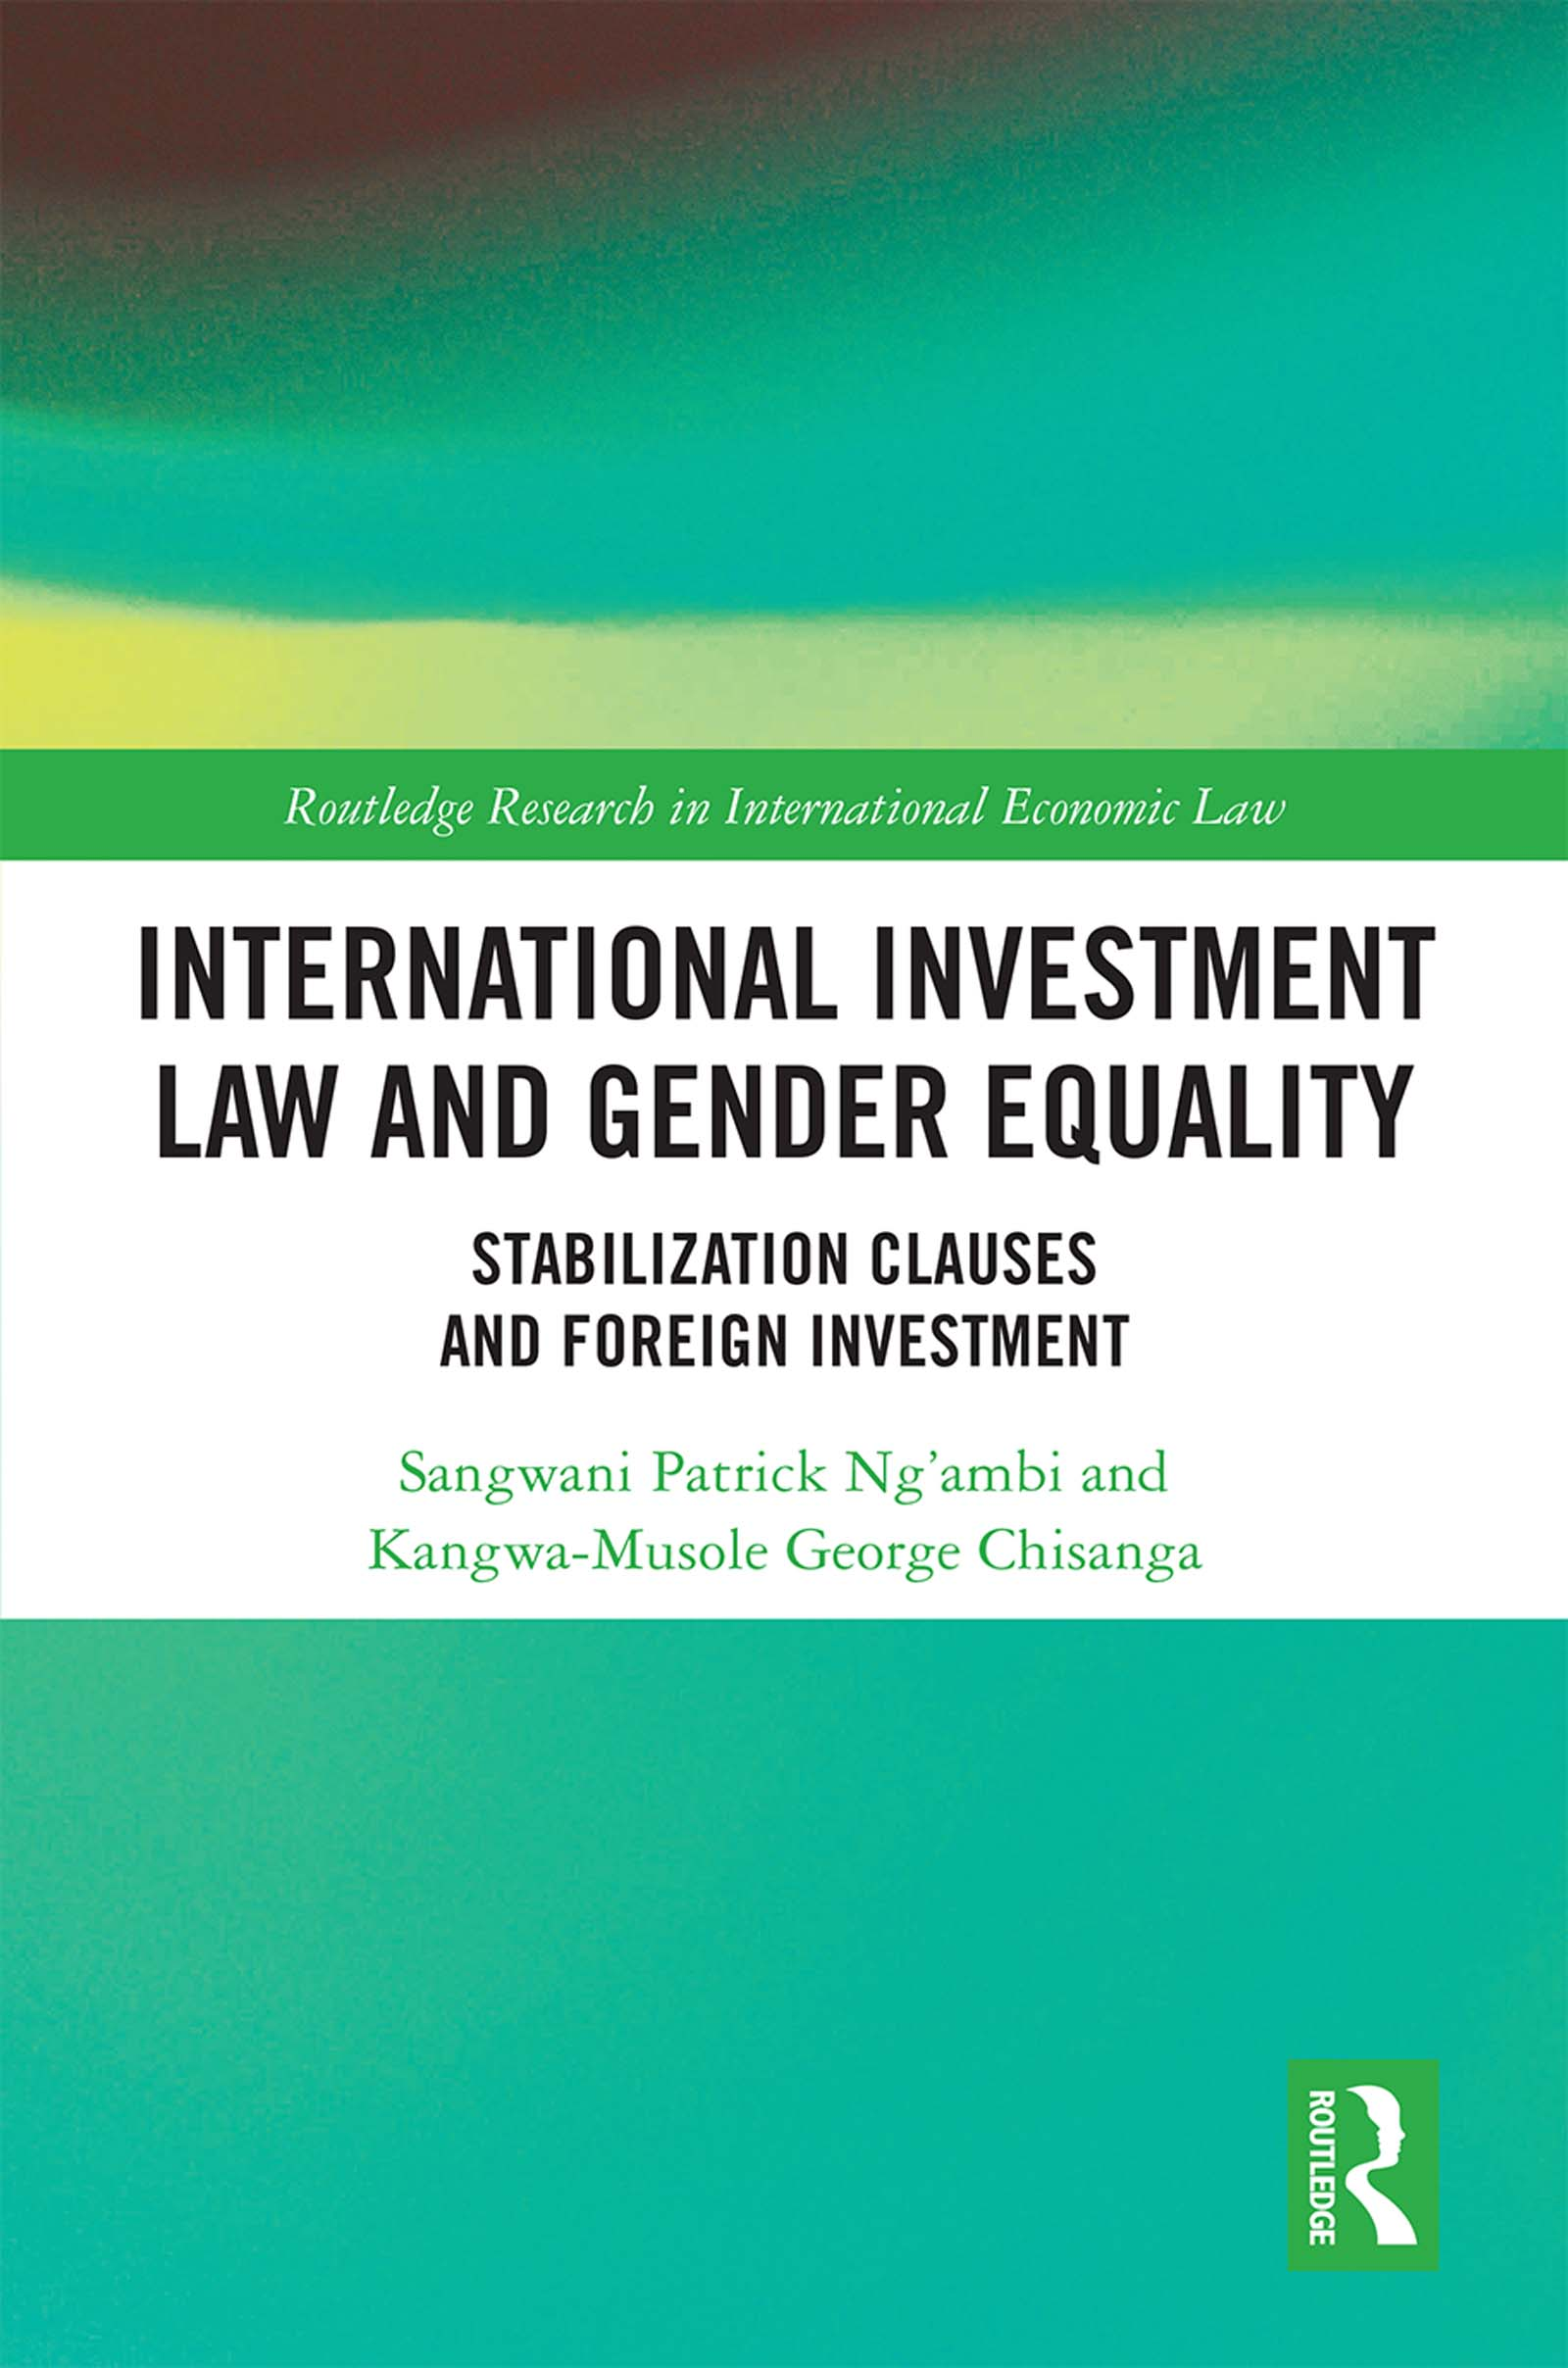 International Investment Law and Gender Equality